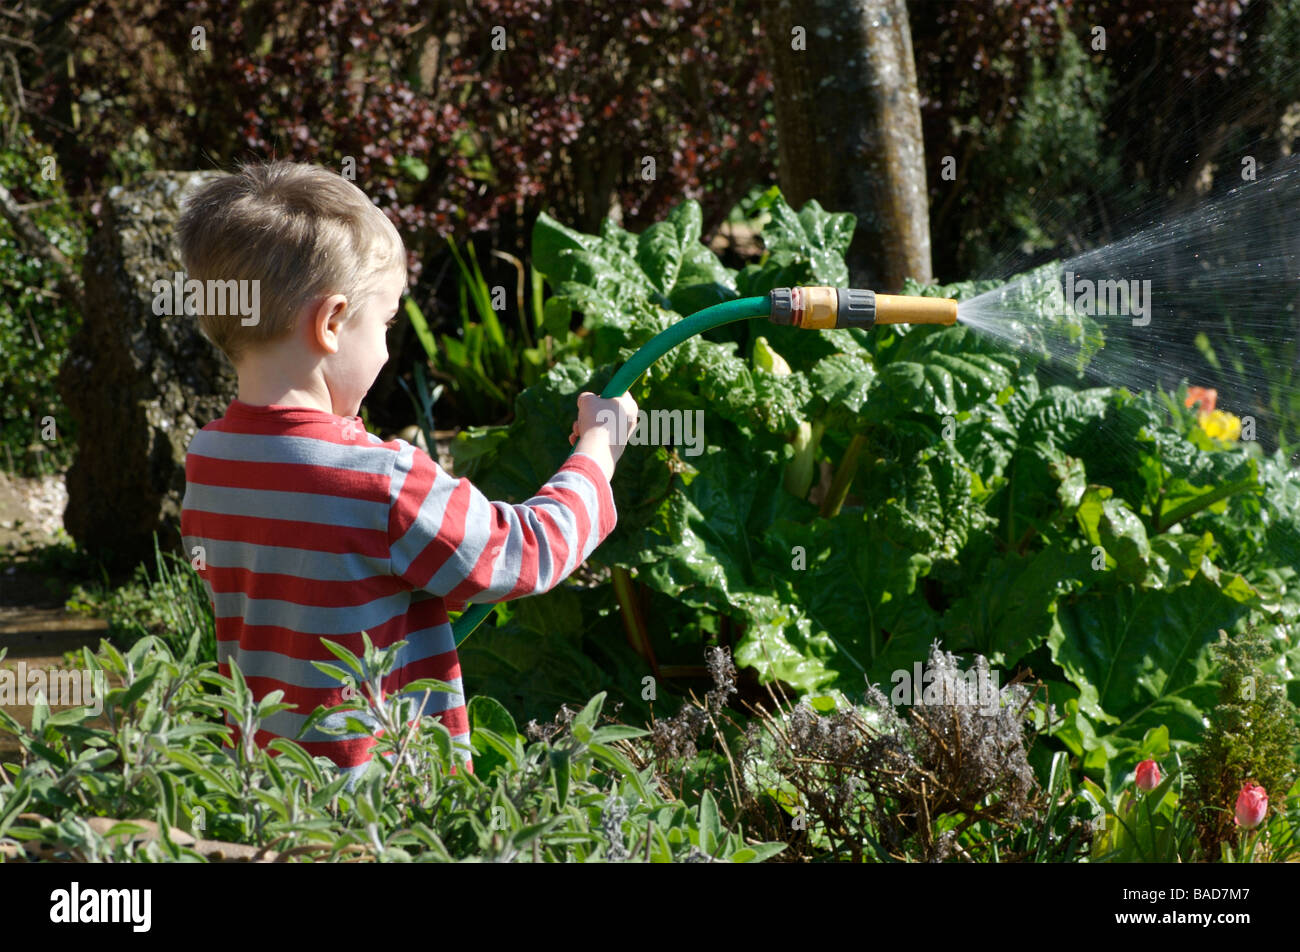 A toddler watering the garden with a hose pipe - Stock Image